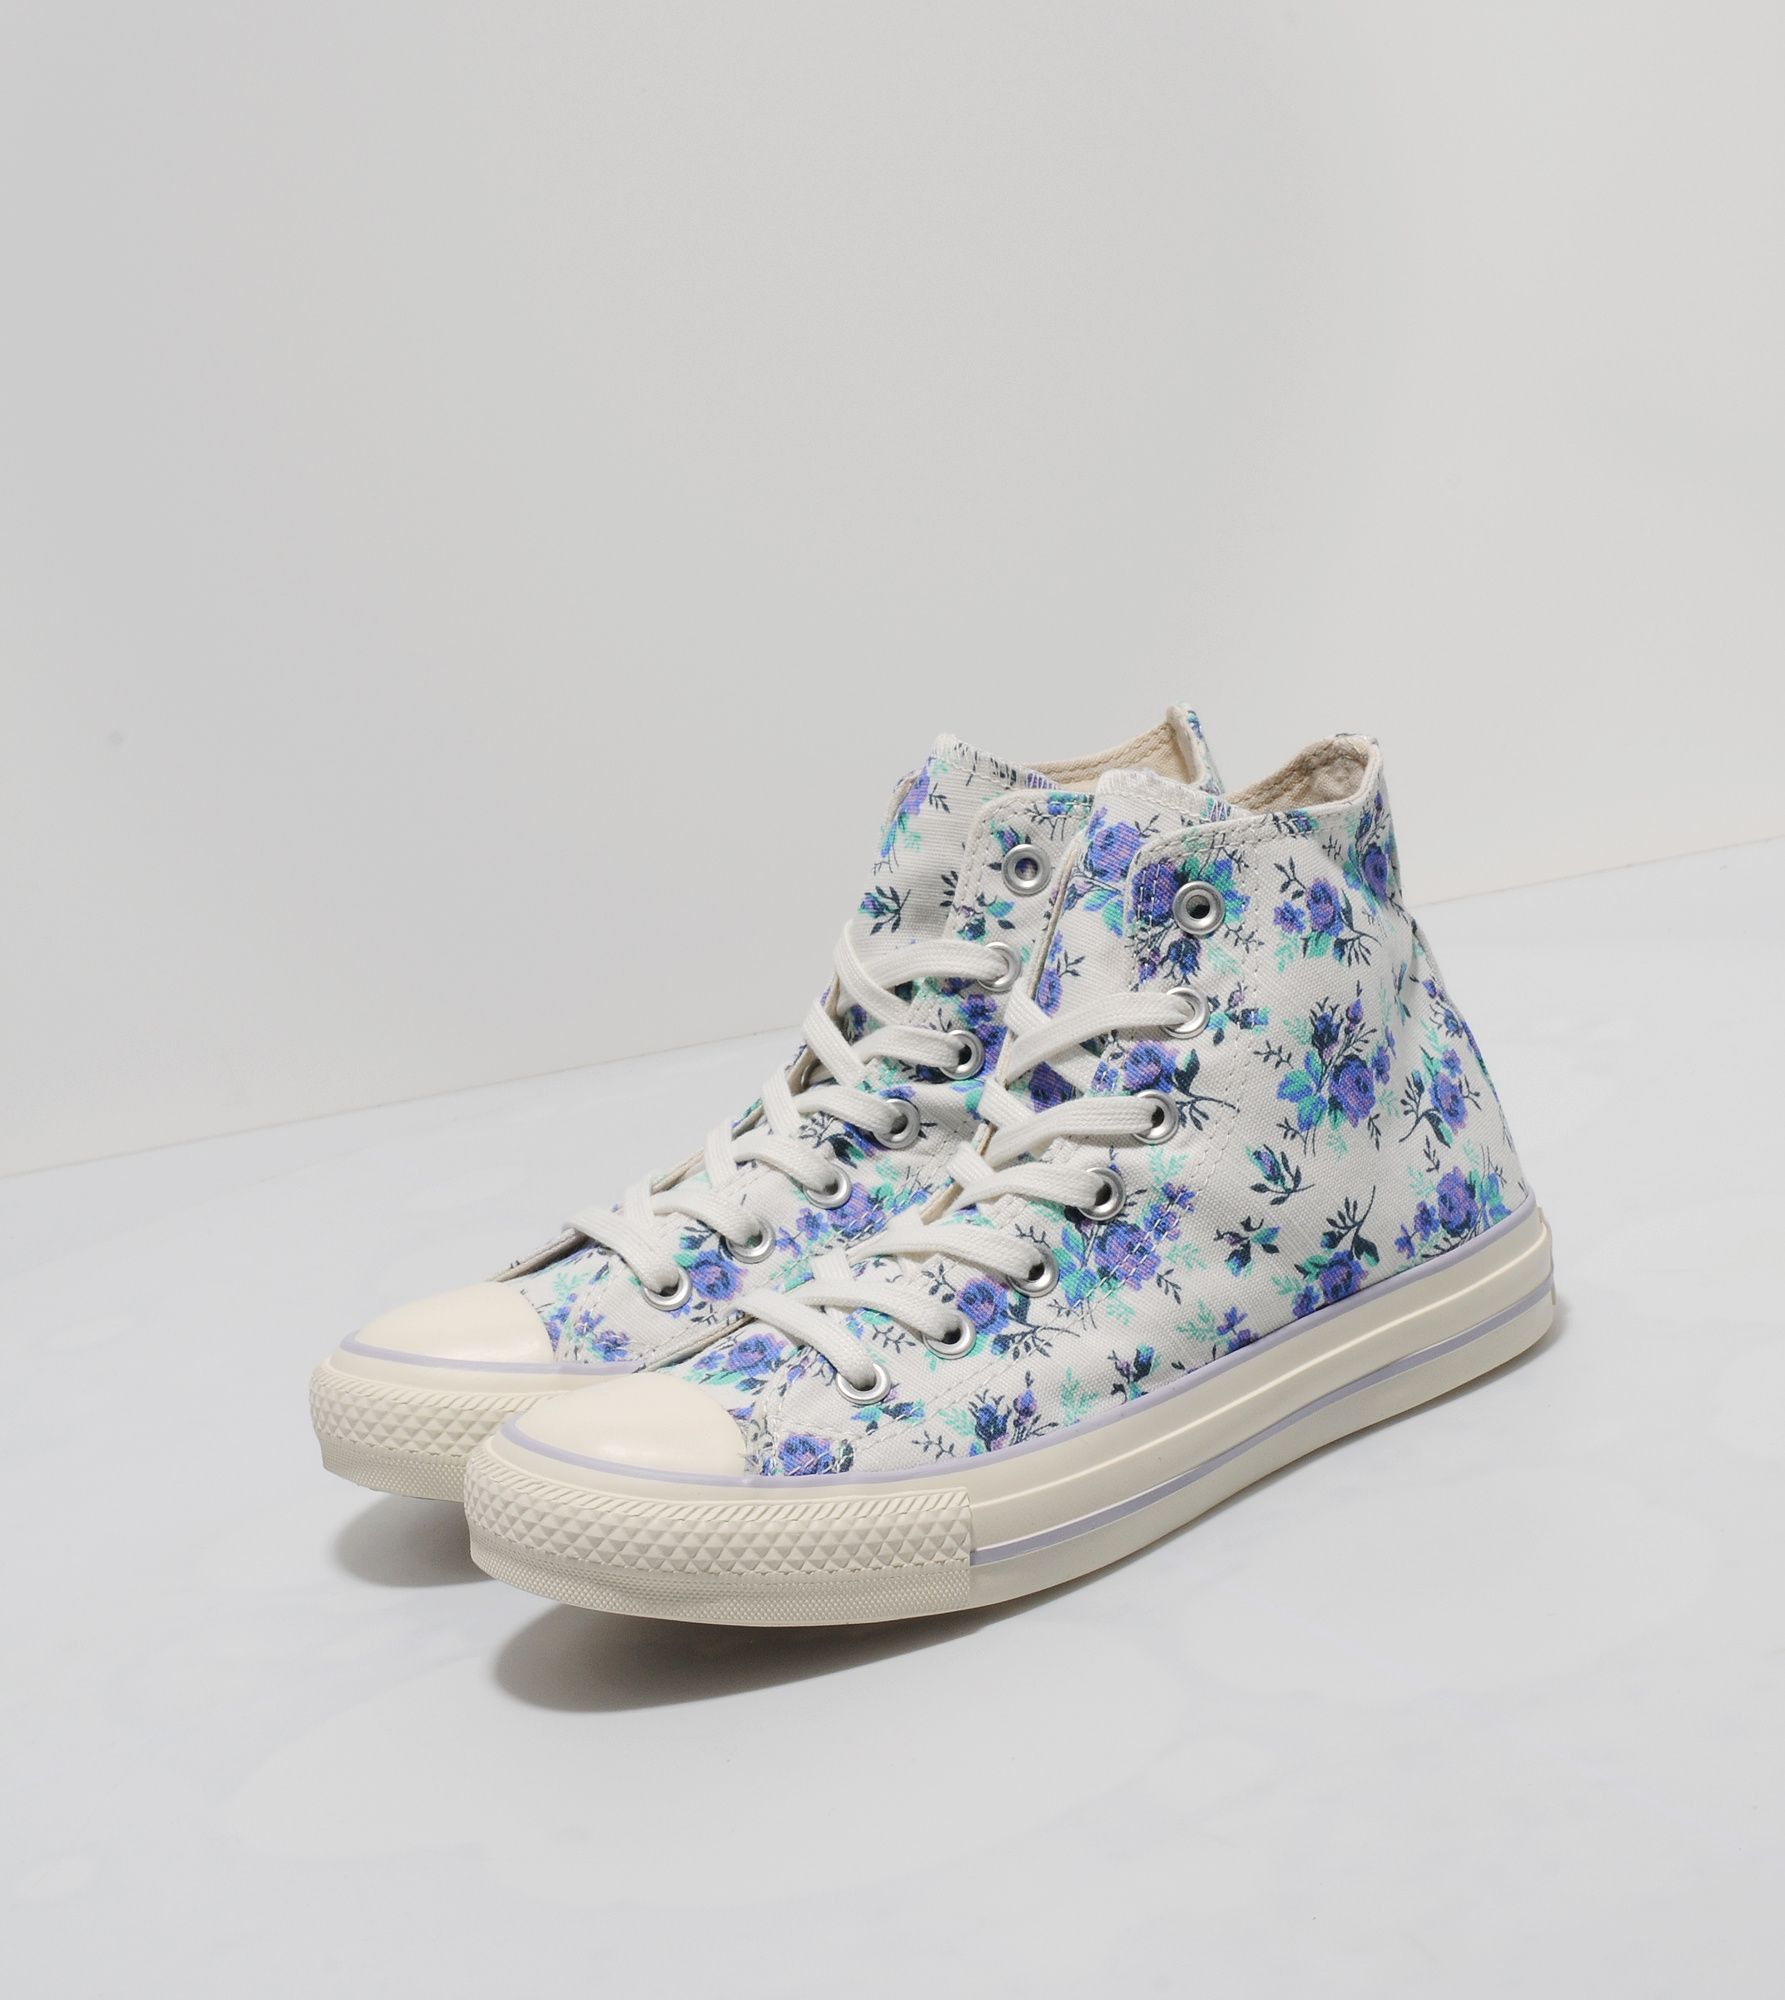 Converse All Star Hi Floral